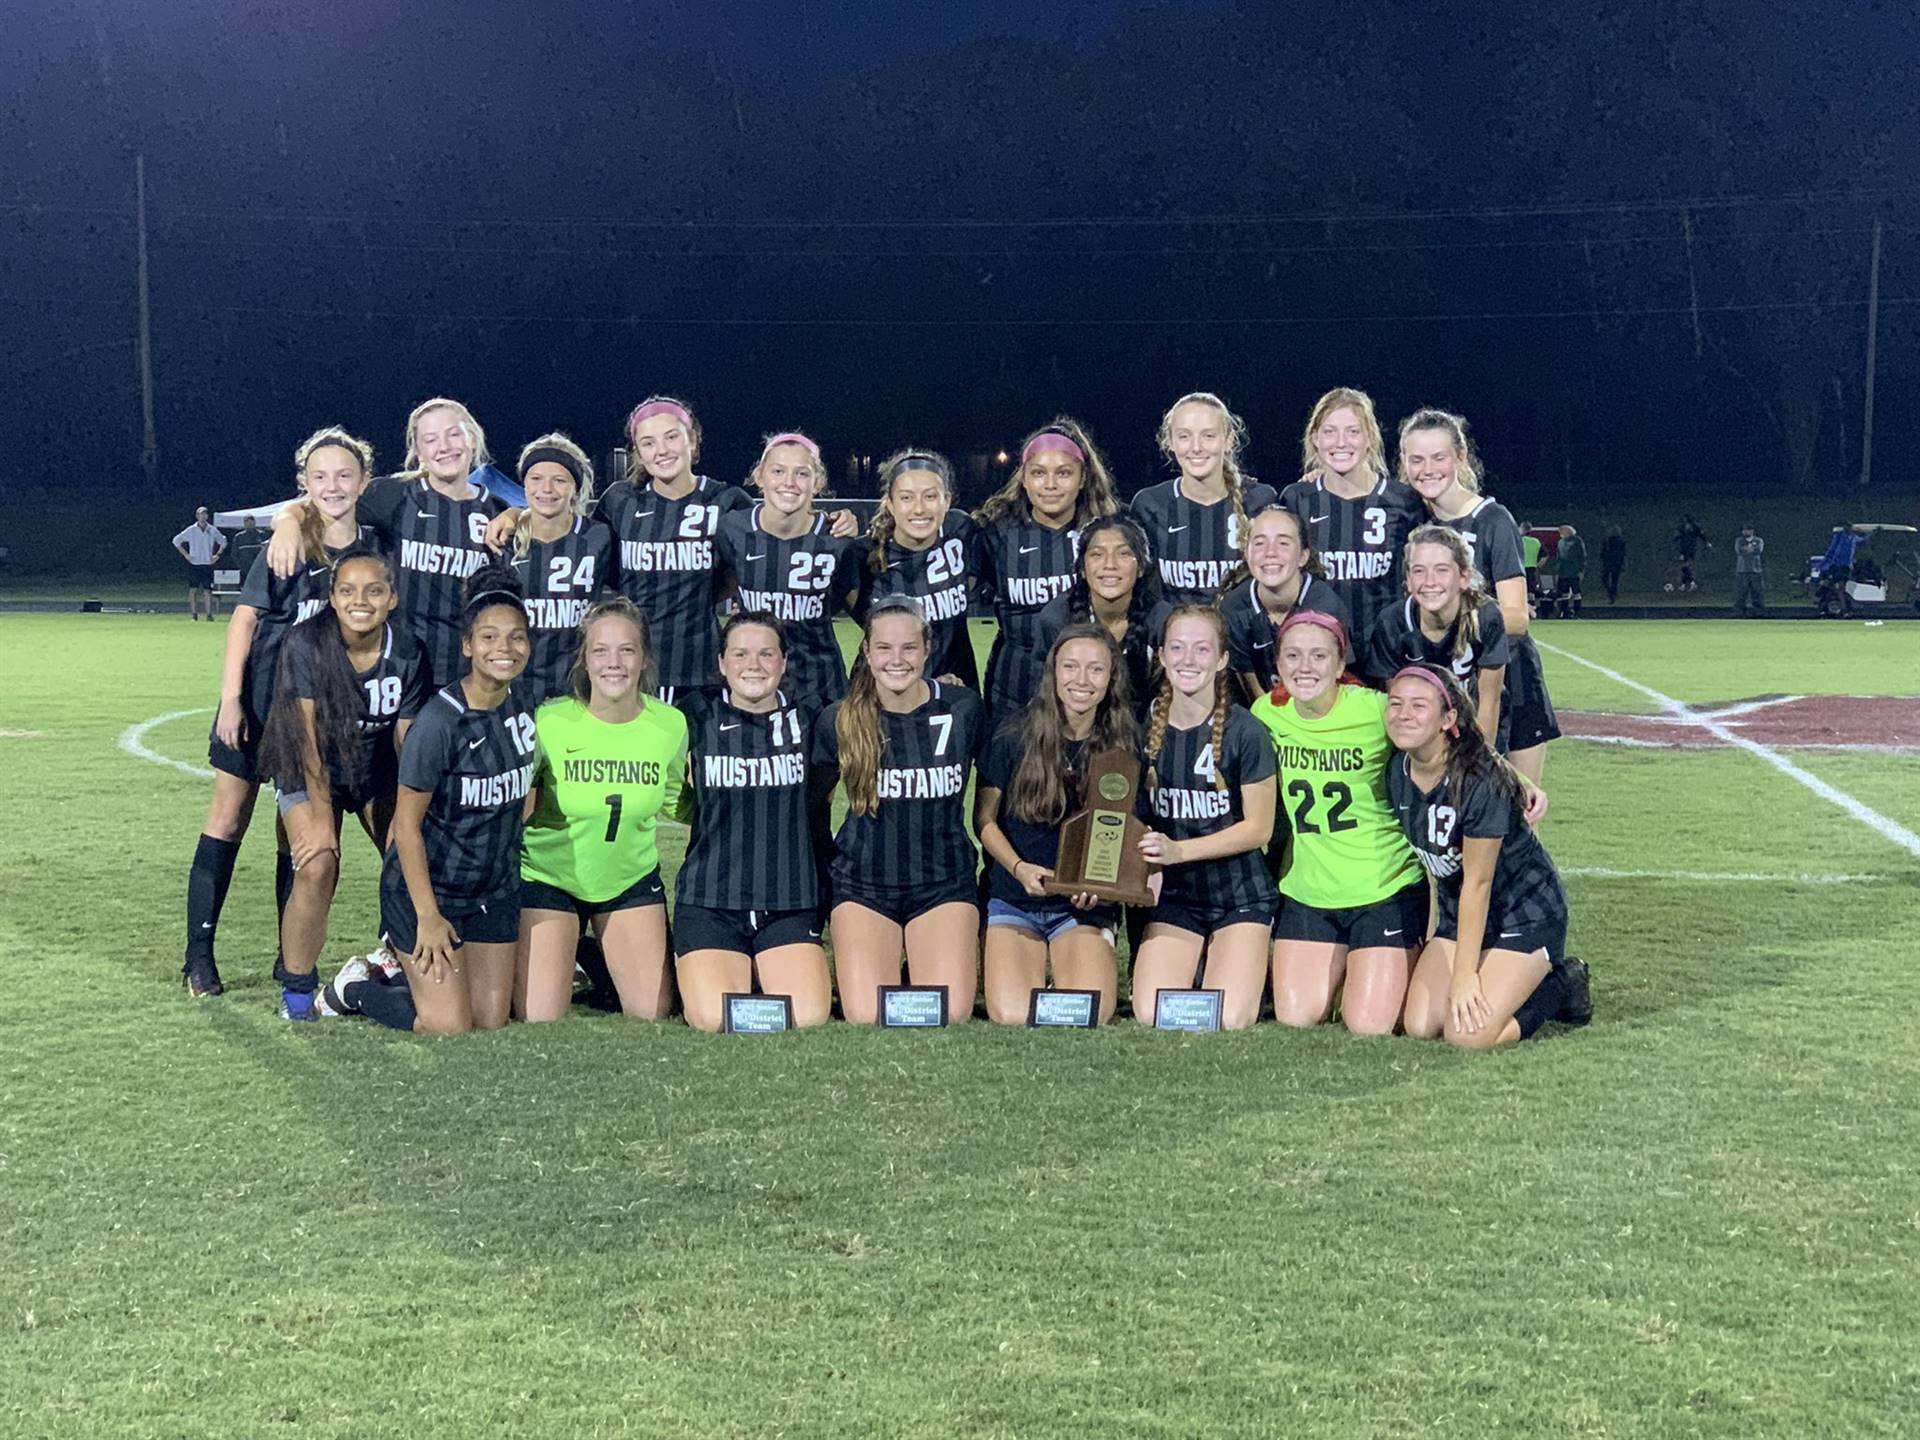 Mustangs Women's Soccer - 2021 District Champions!